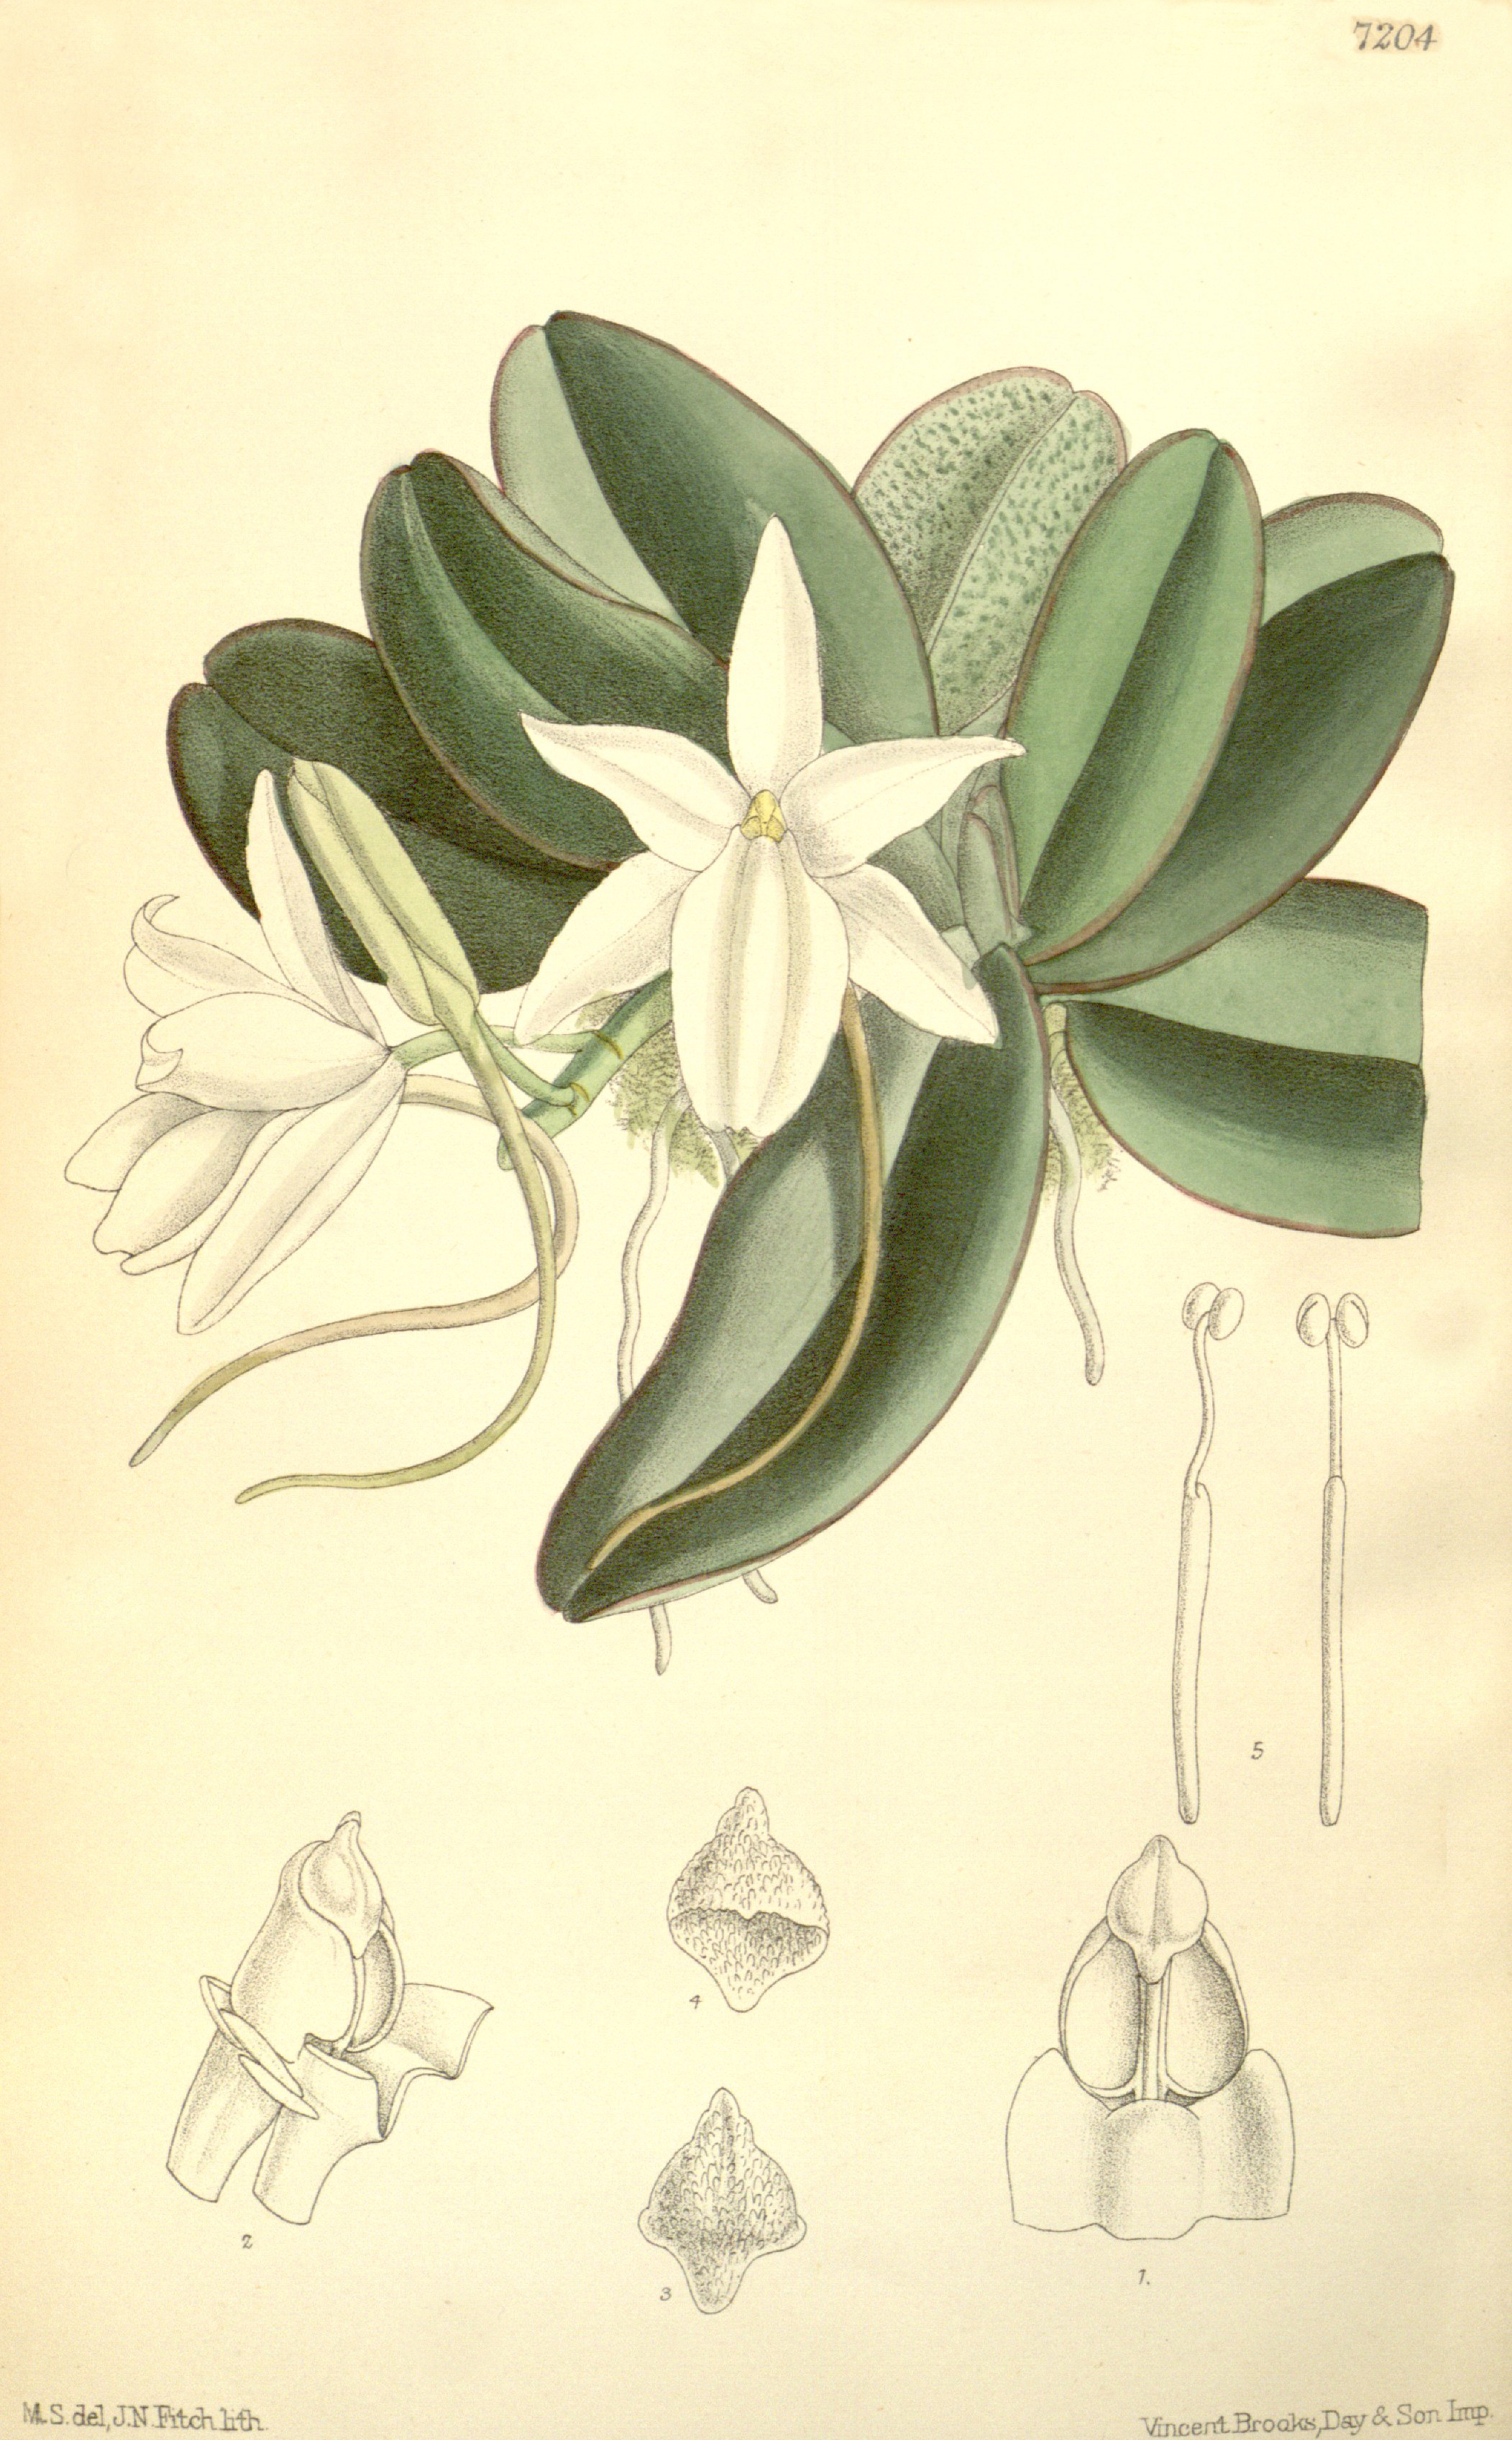 Image of The Magnificent Aerangis